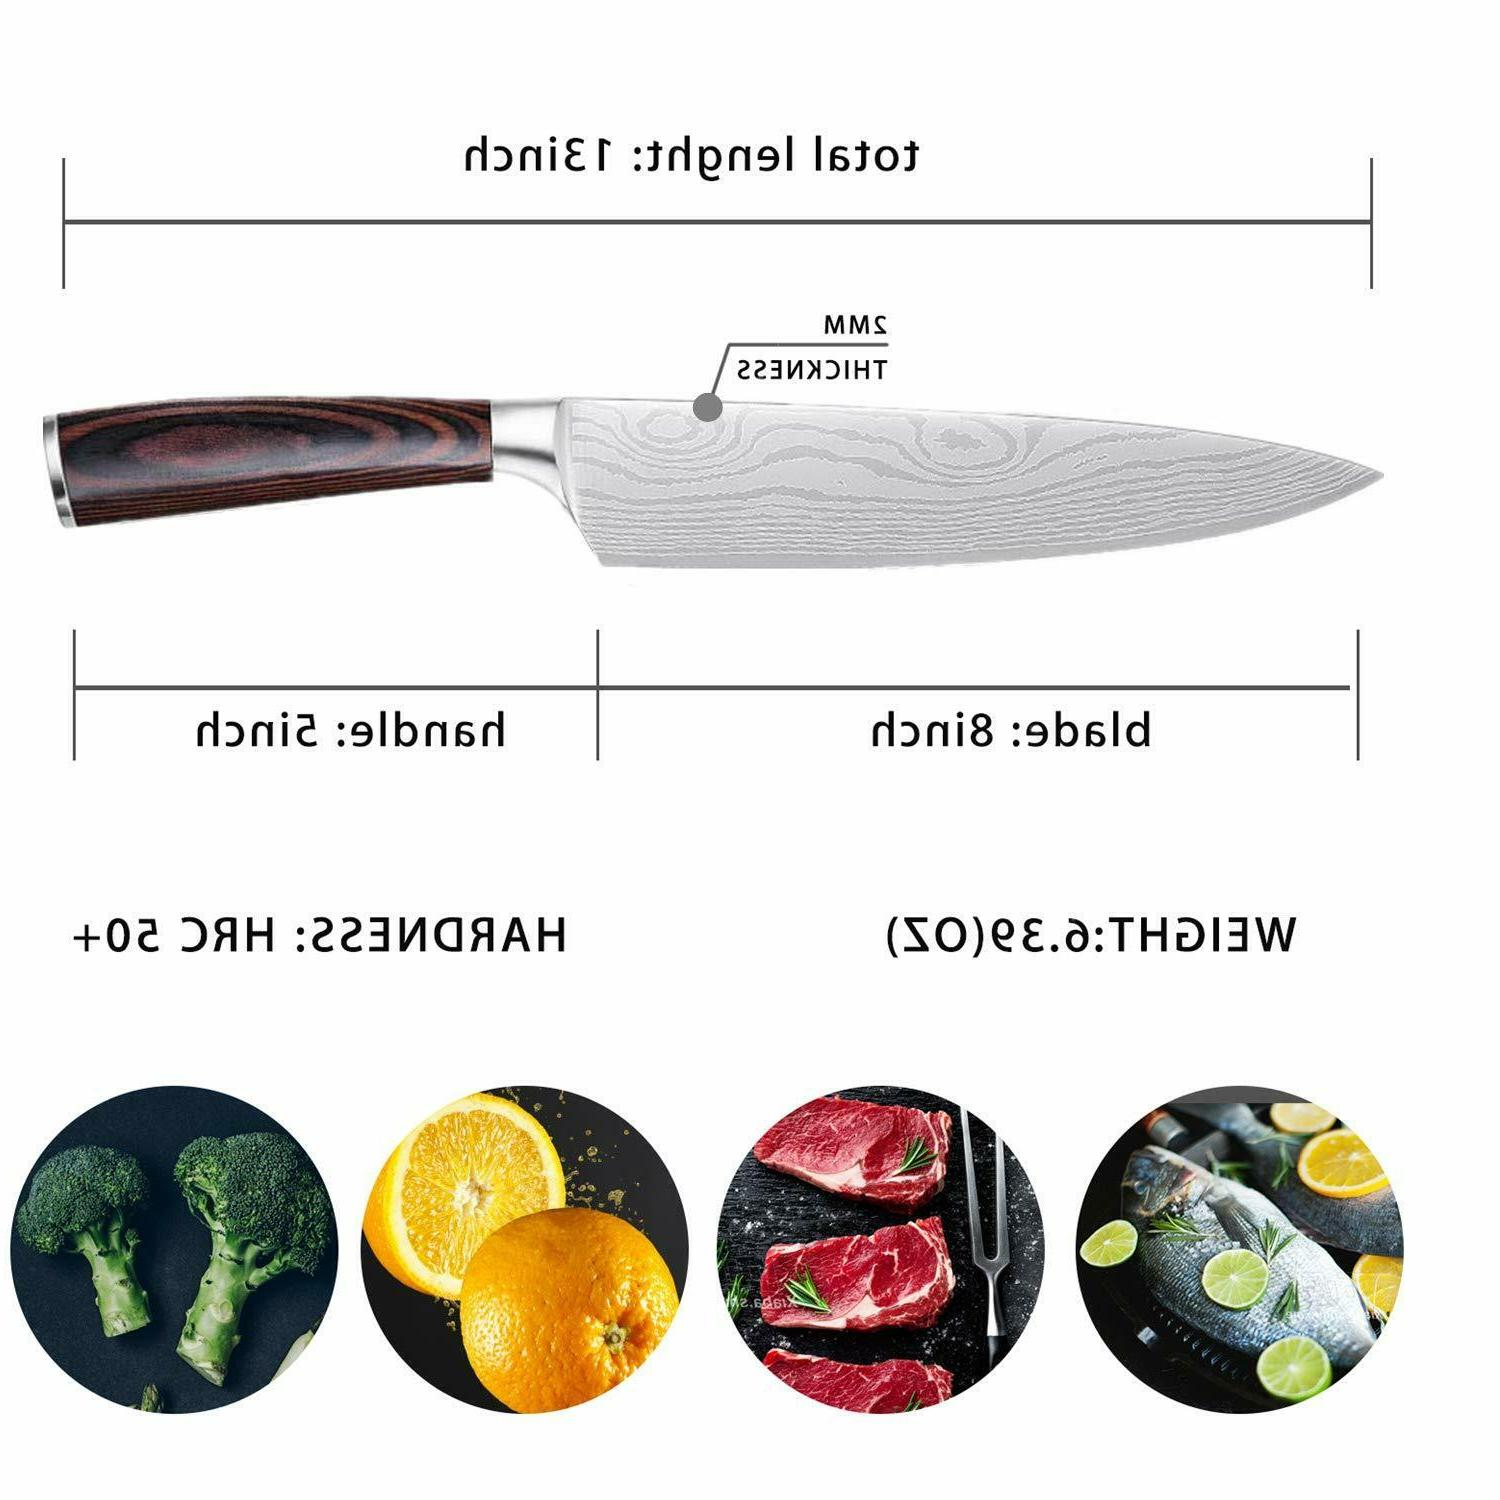 Damascus Chef 8-Inch Knife Slicing Wooden